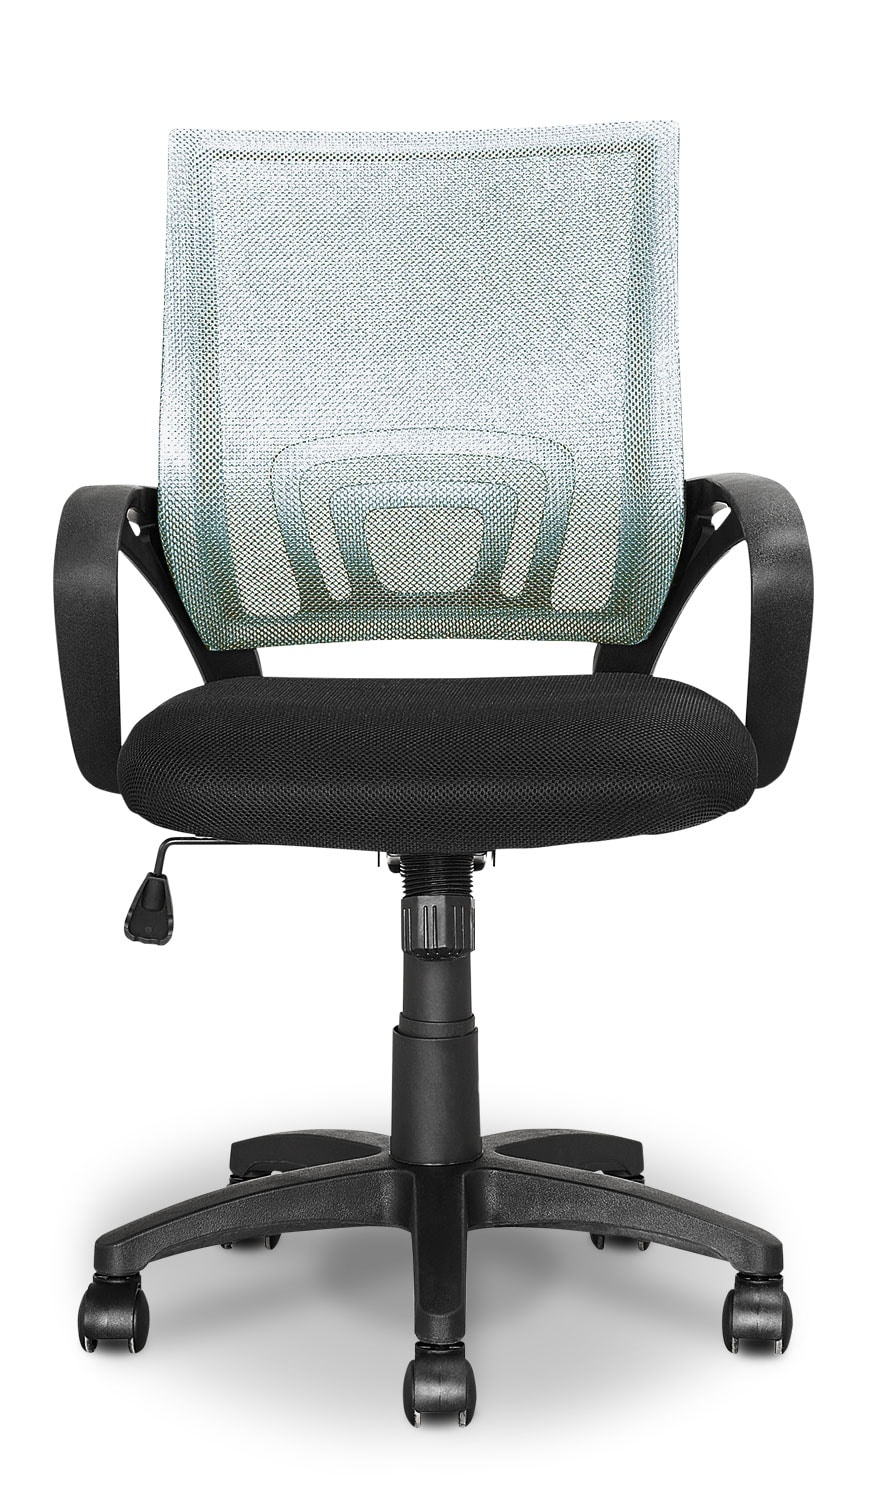 Loft mesh office chair white the brick